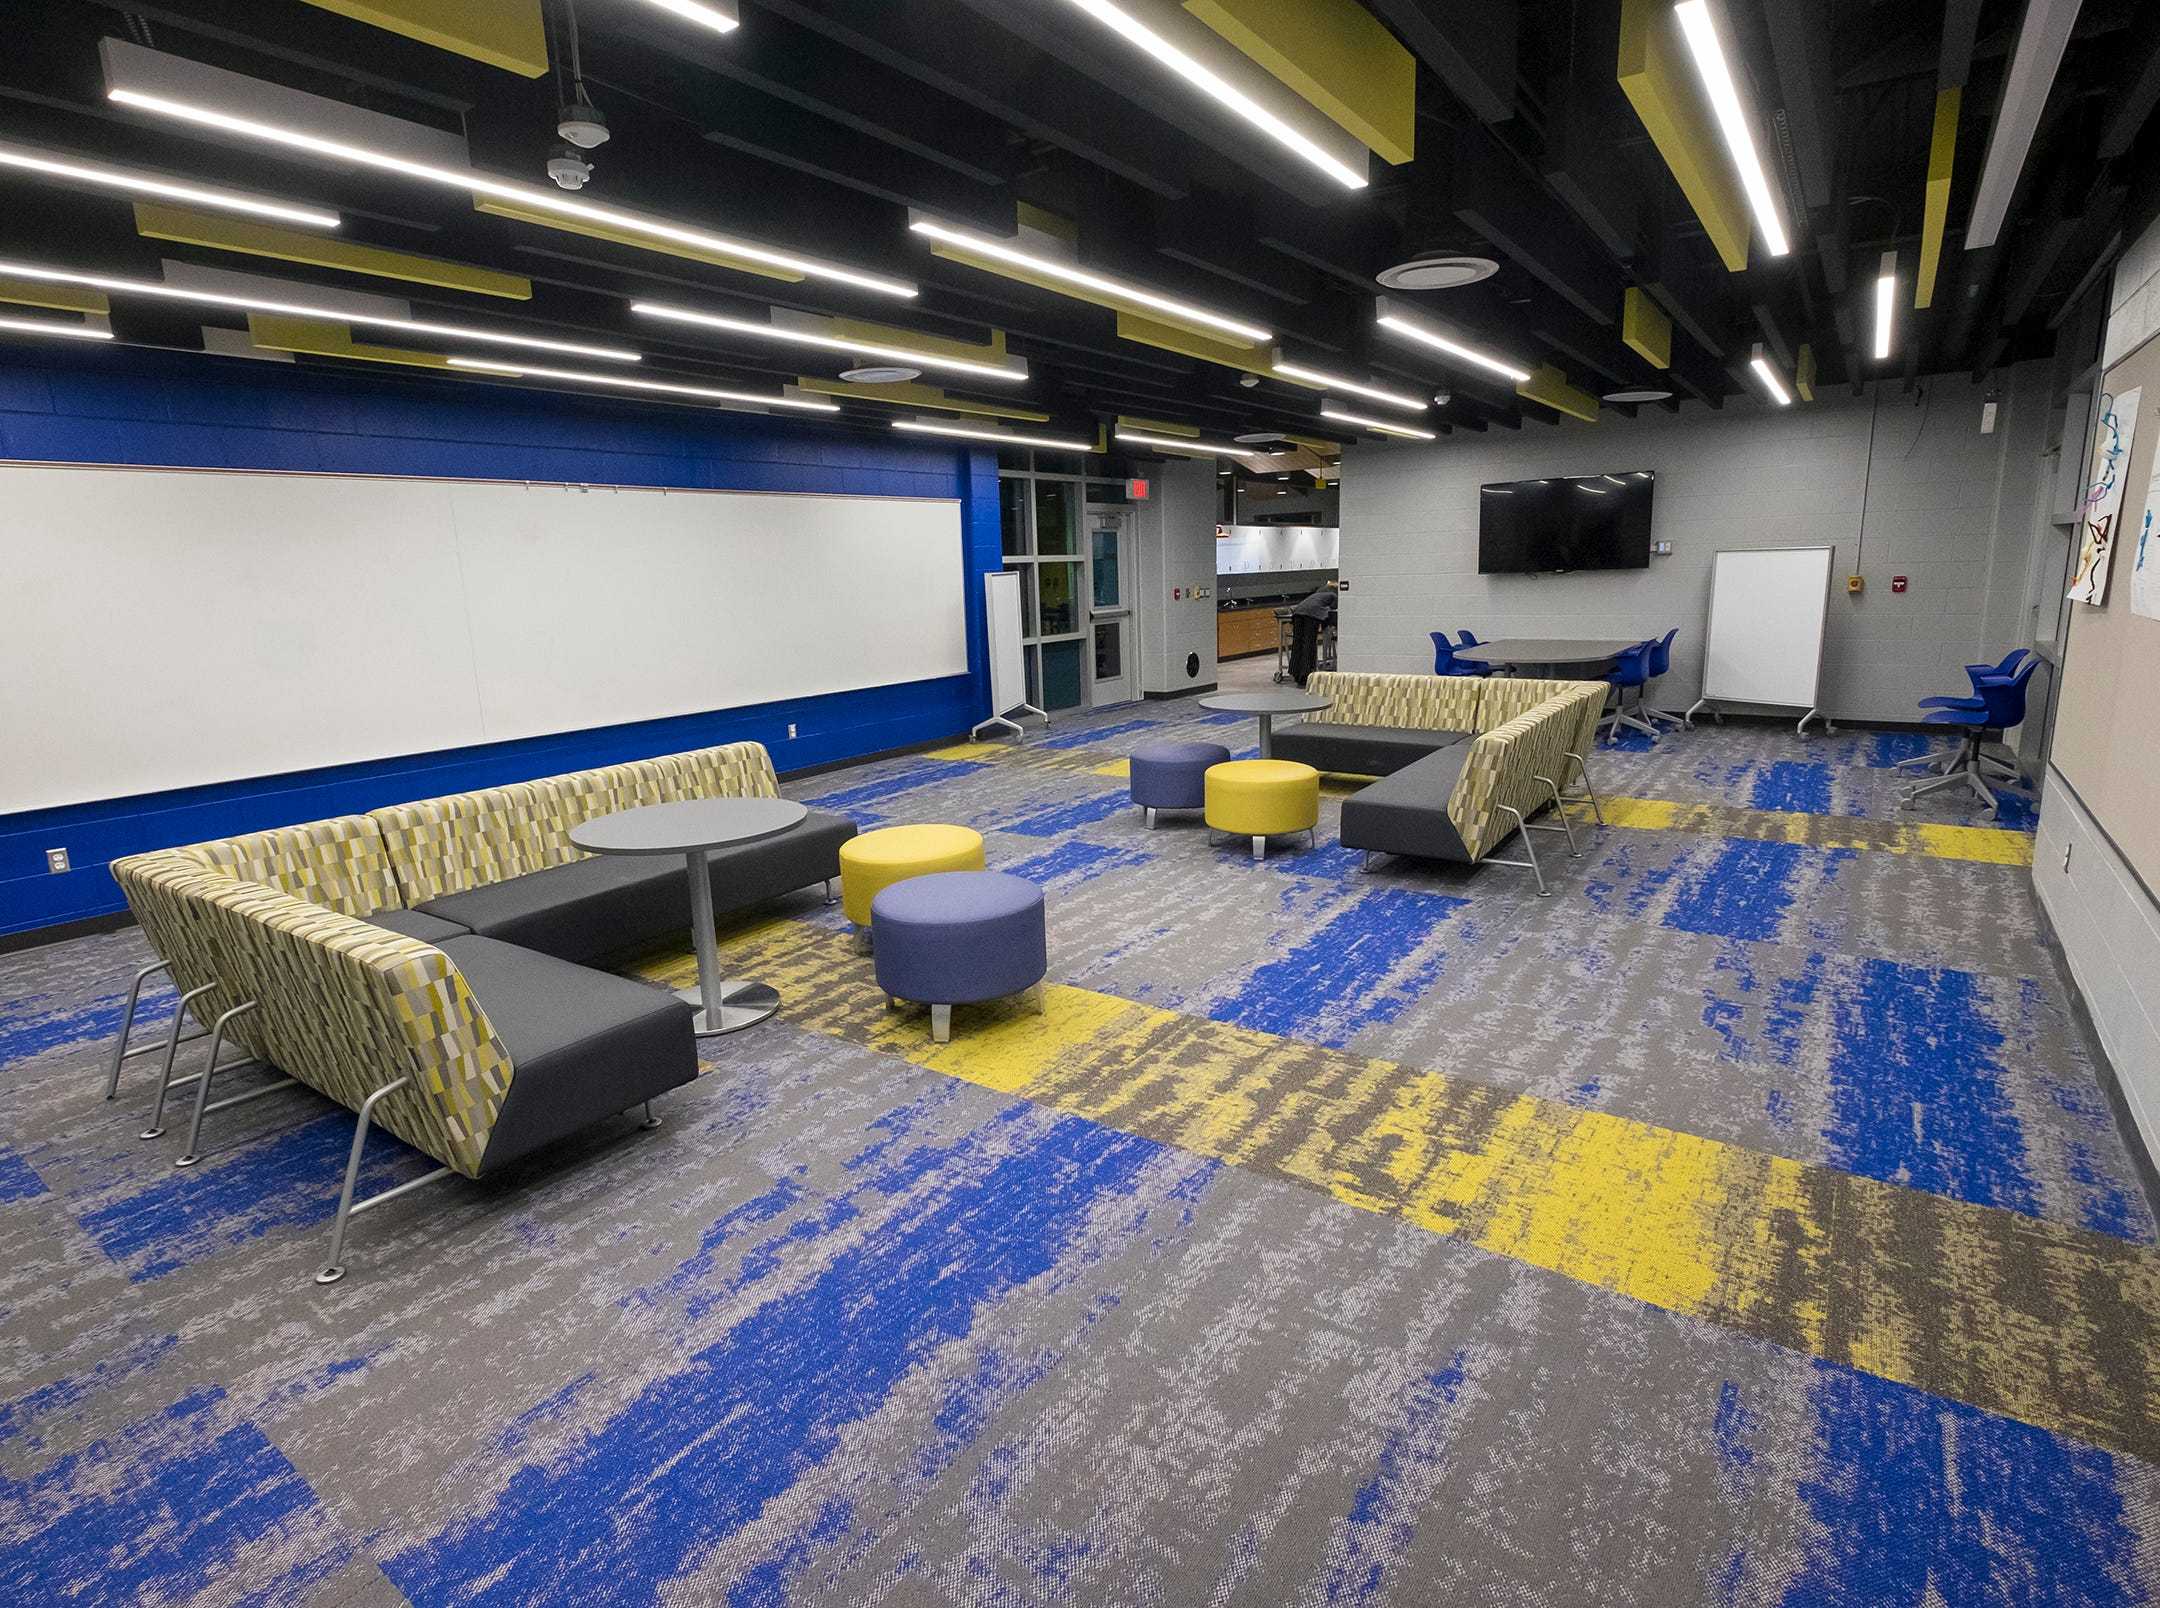 Guests were given a first look into the new STEAM labs at Port Huron Northern during a ribbon cutting ceremony Wednesday, Jan. 23, 2019.